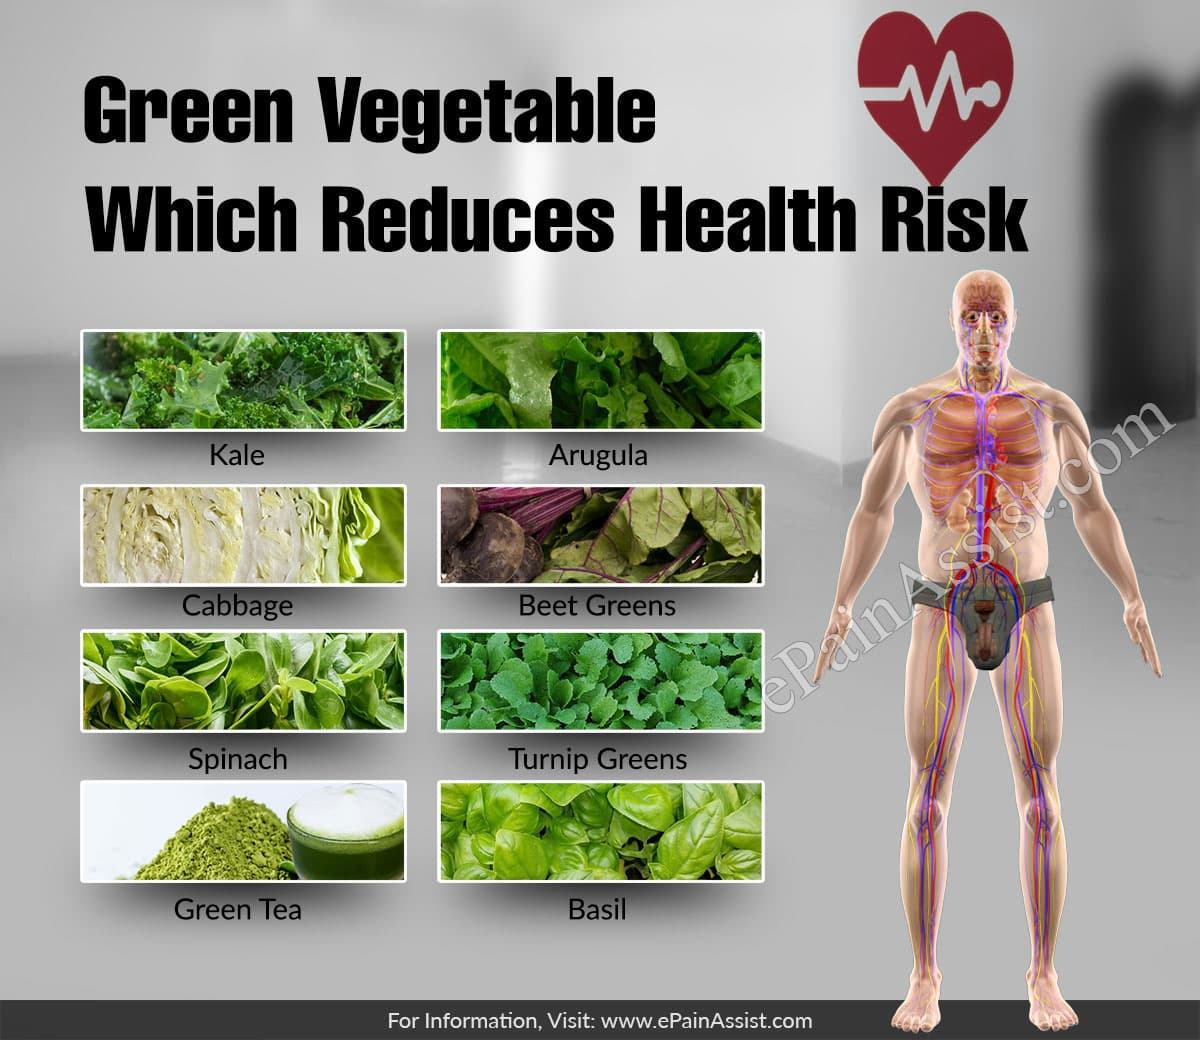 Green Vegetable Which Reduces Health Risk